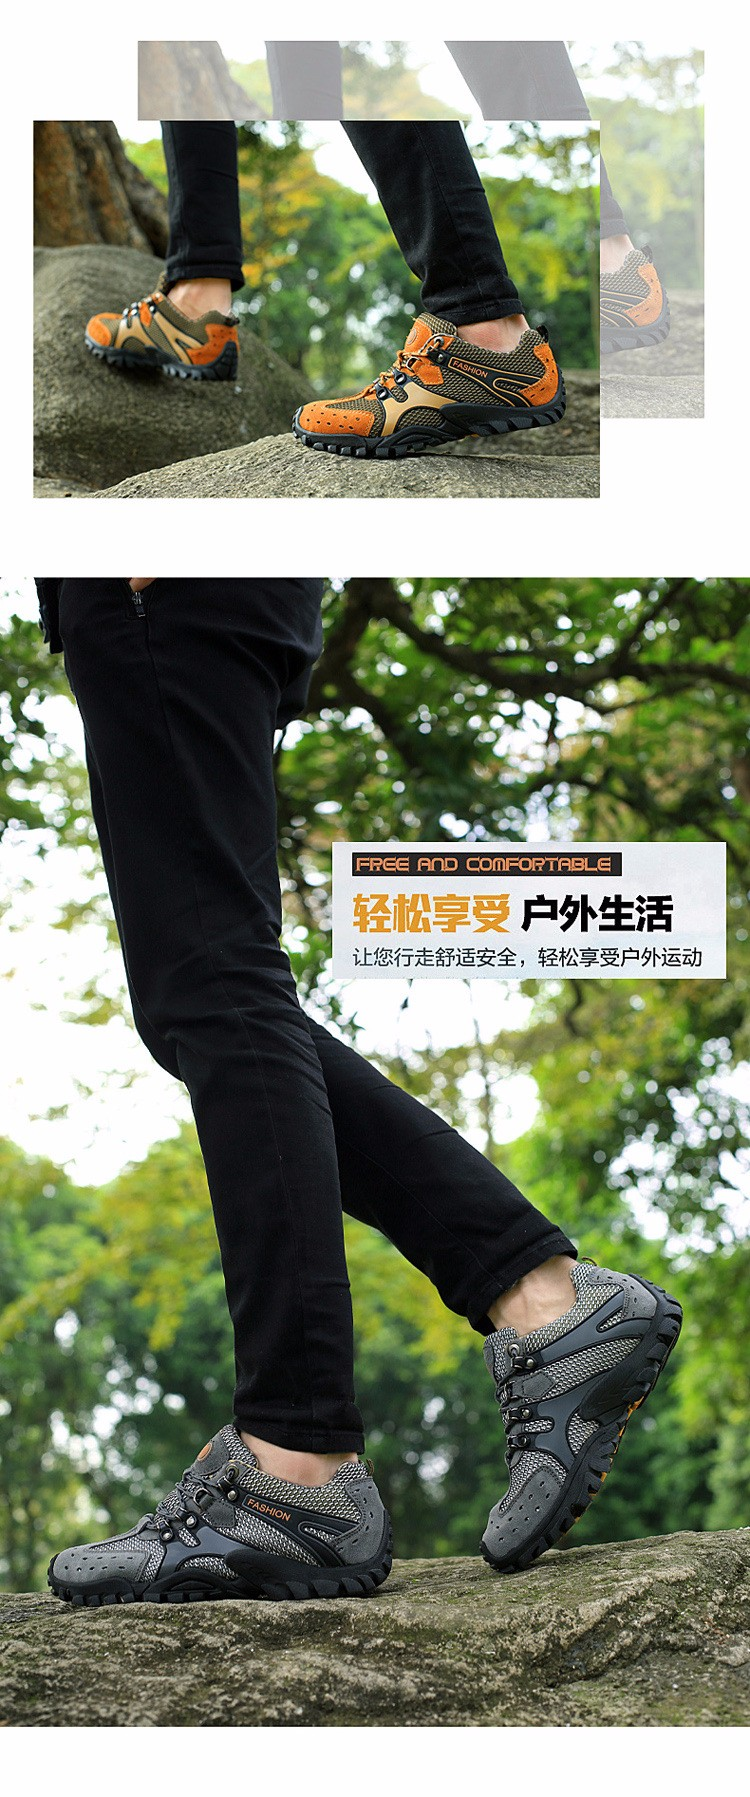 Outdoor Breathable Shoes Men Lightweight Walking Climbing Shoes Anti-skid Men Aqua Water Trekking Shoes Men (16)